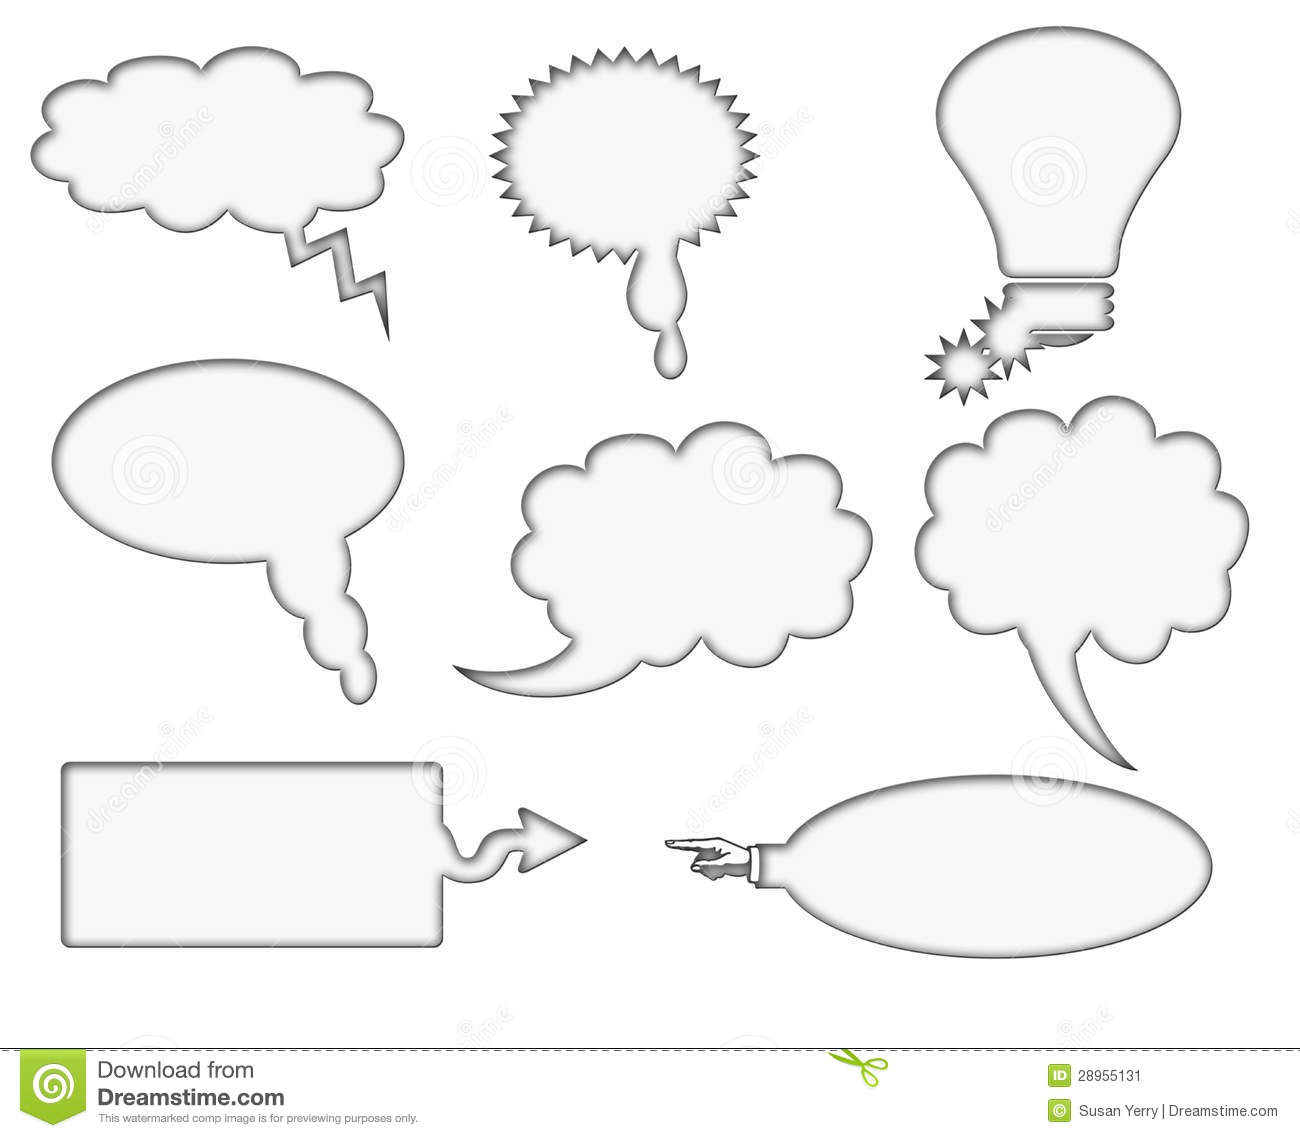 how to draw the perfect speech bubble